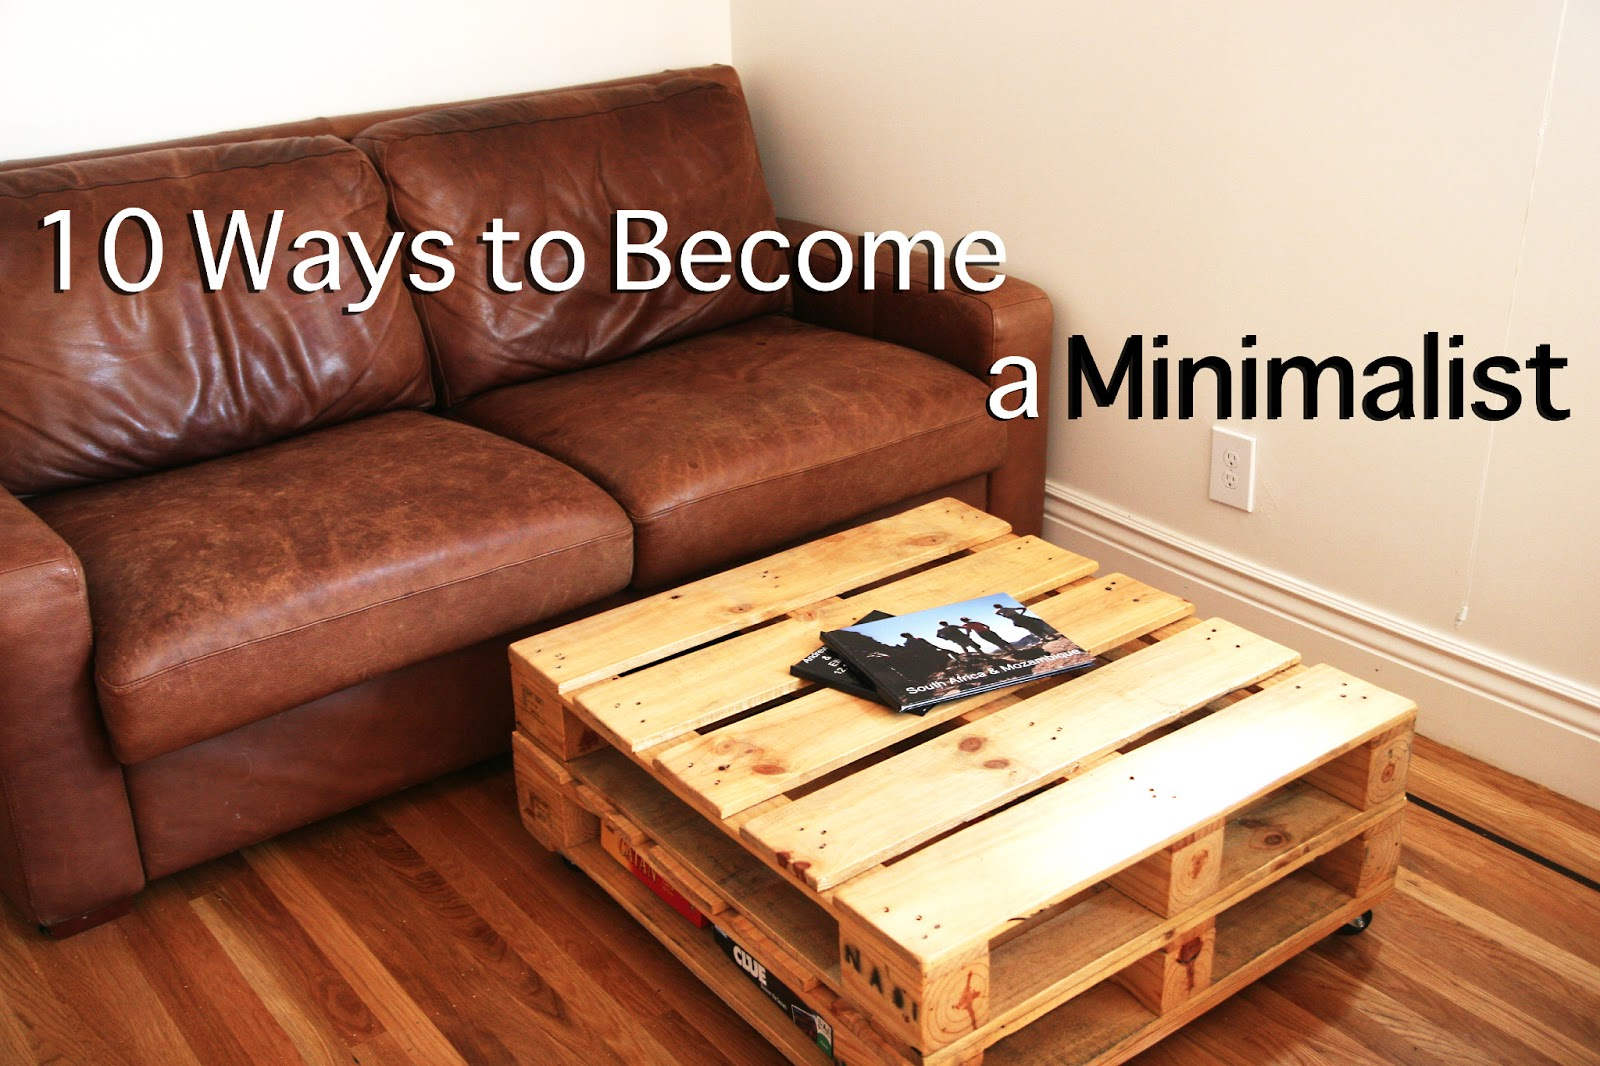 ellies wonder 10 ways to become a minimalist